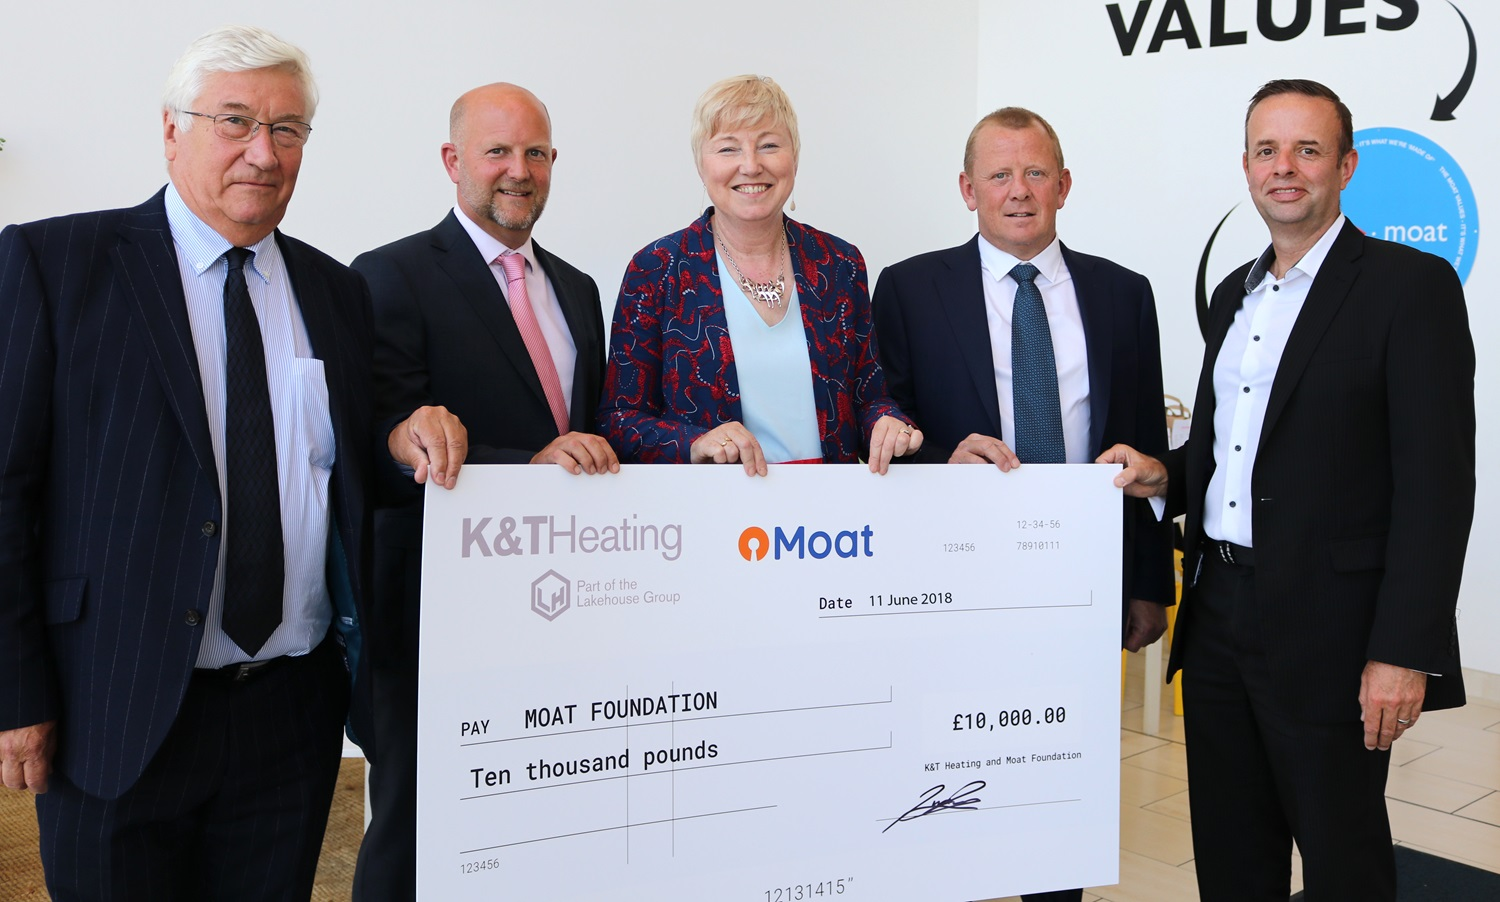 Cheque presentation from K&T Heading to Moat Foundation